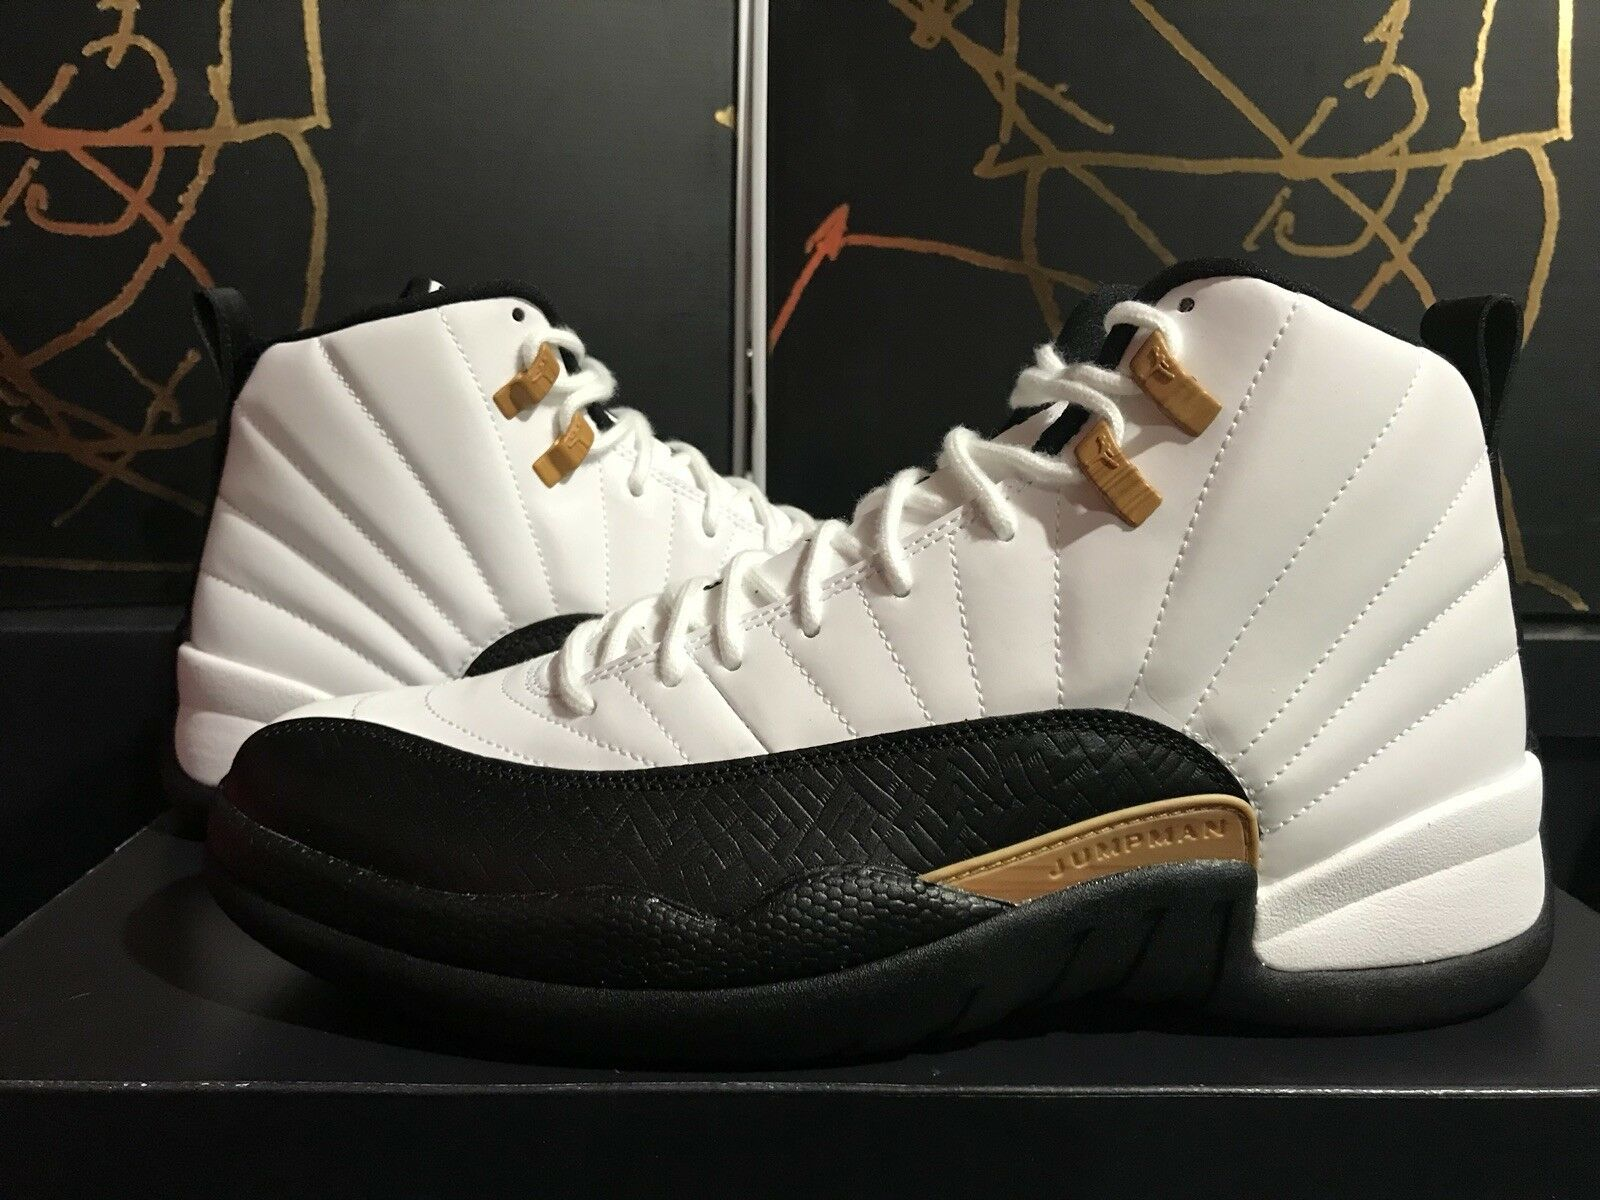 Nike Air Jordan XII 12 Retro CNY CHINESE NEW YEAR size 7.5